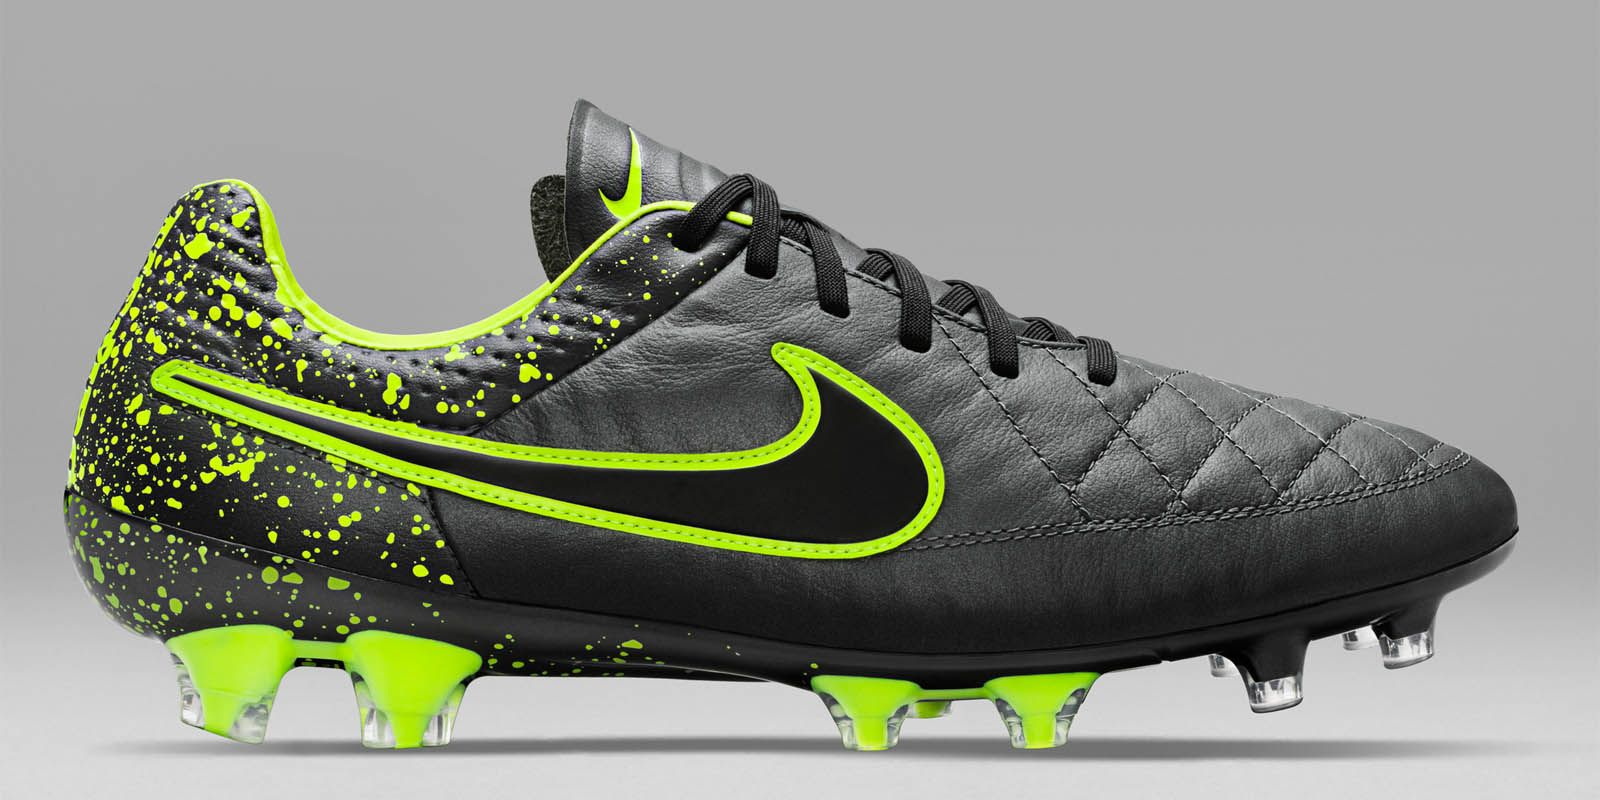 Official: Partly Knitted Black Next-Gen Nike Tiempo Legend 7 2017 Boots  Leaked - Footy Headlines | Boot Room | Pinterest | Soccer cleats